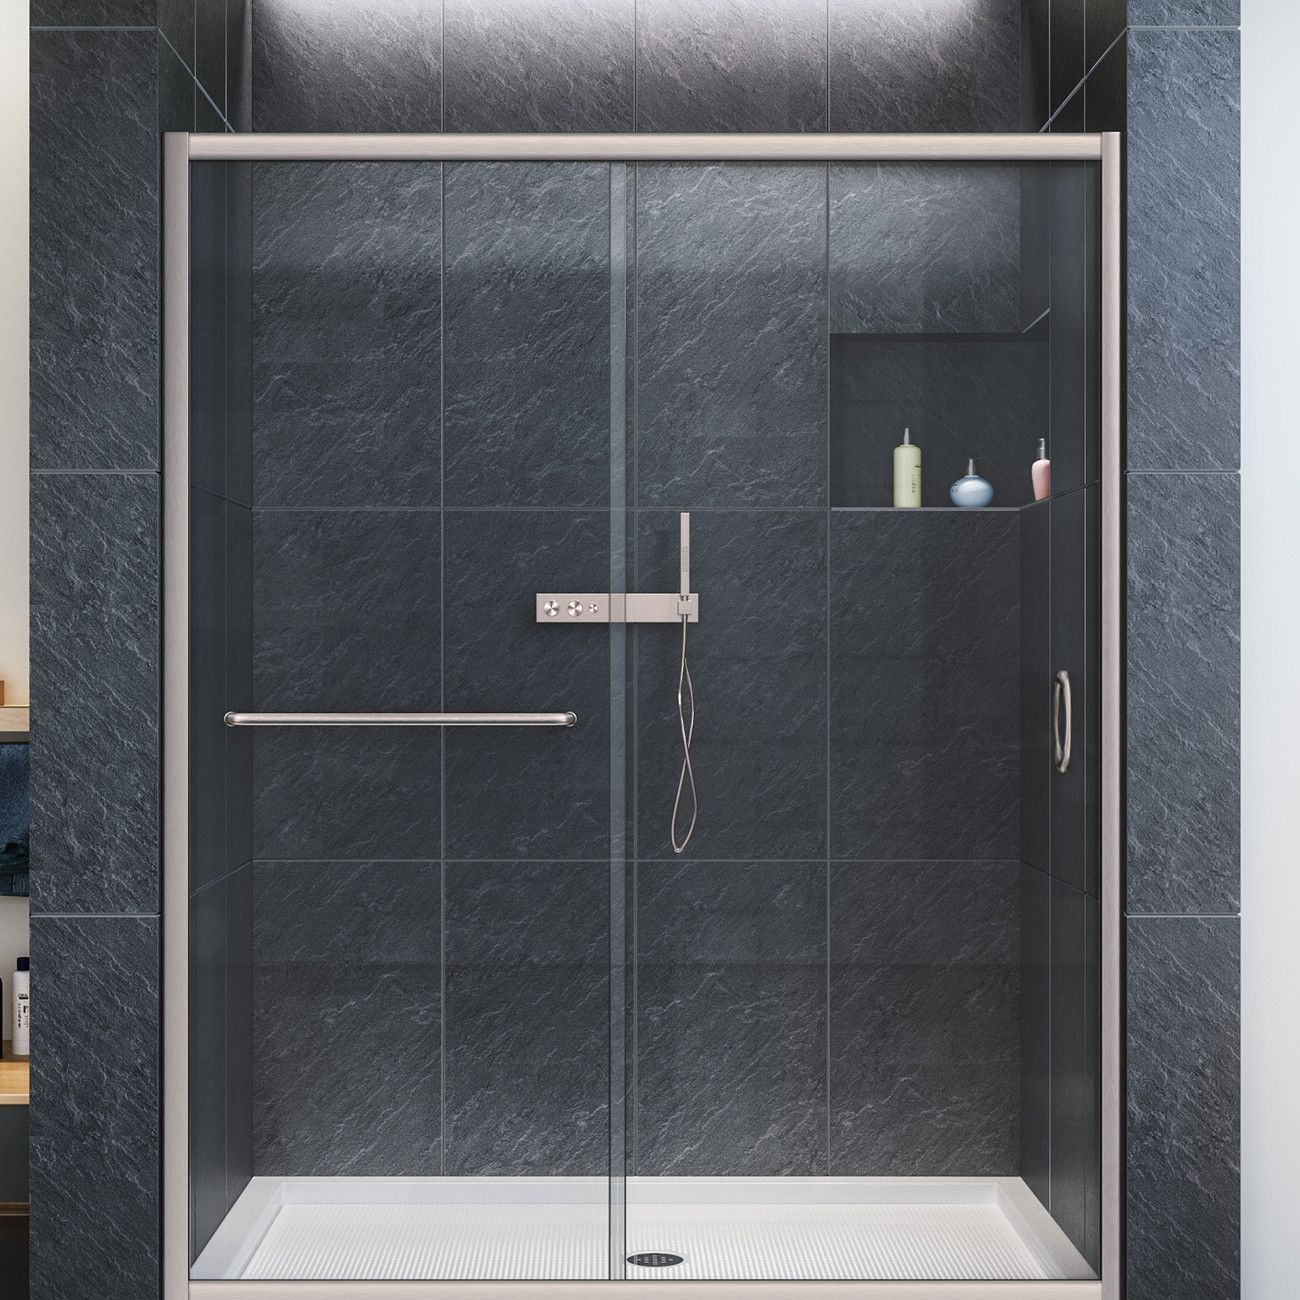 This Kit Combines The Infinity Z Shower Door With A Coordinating